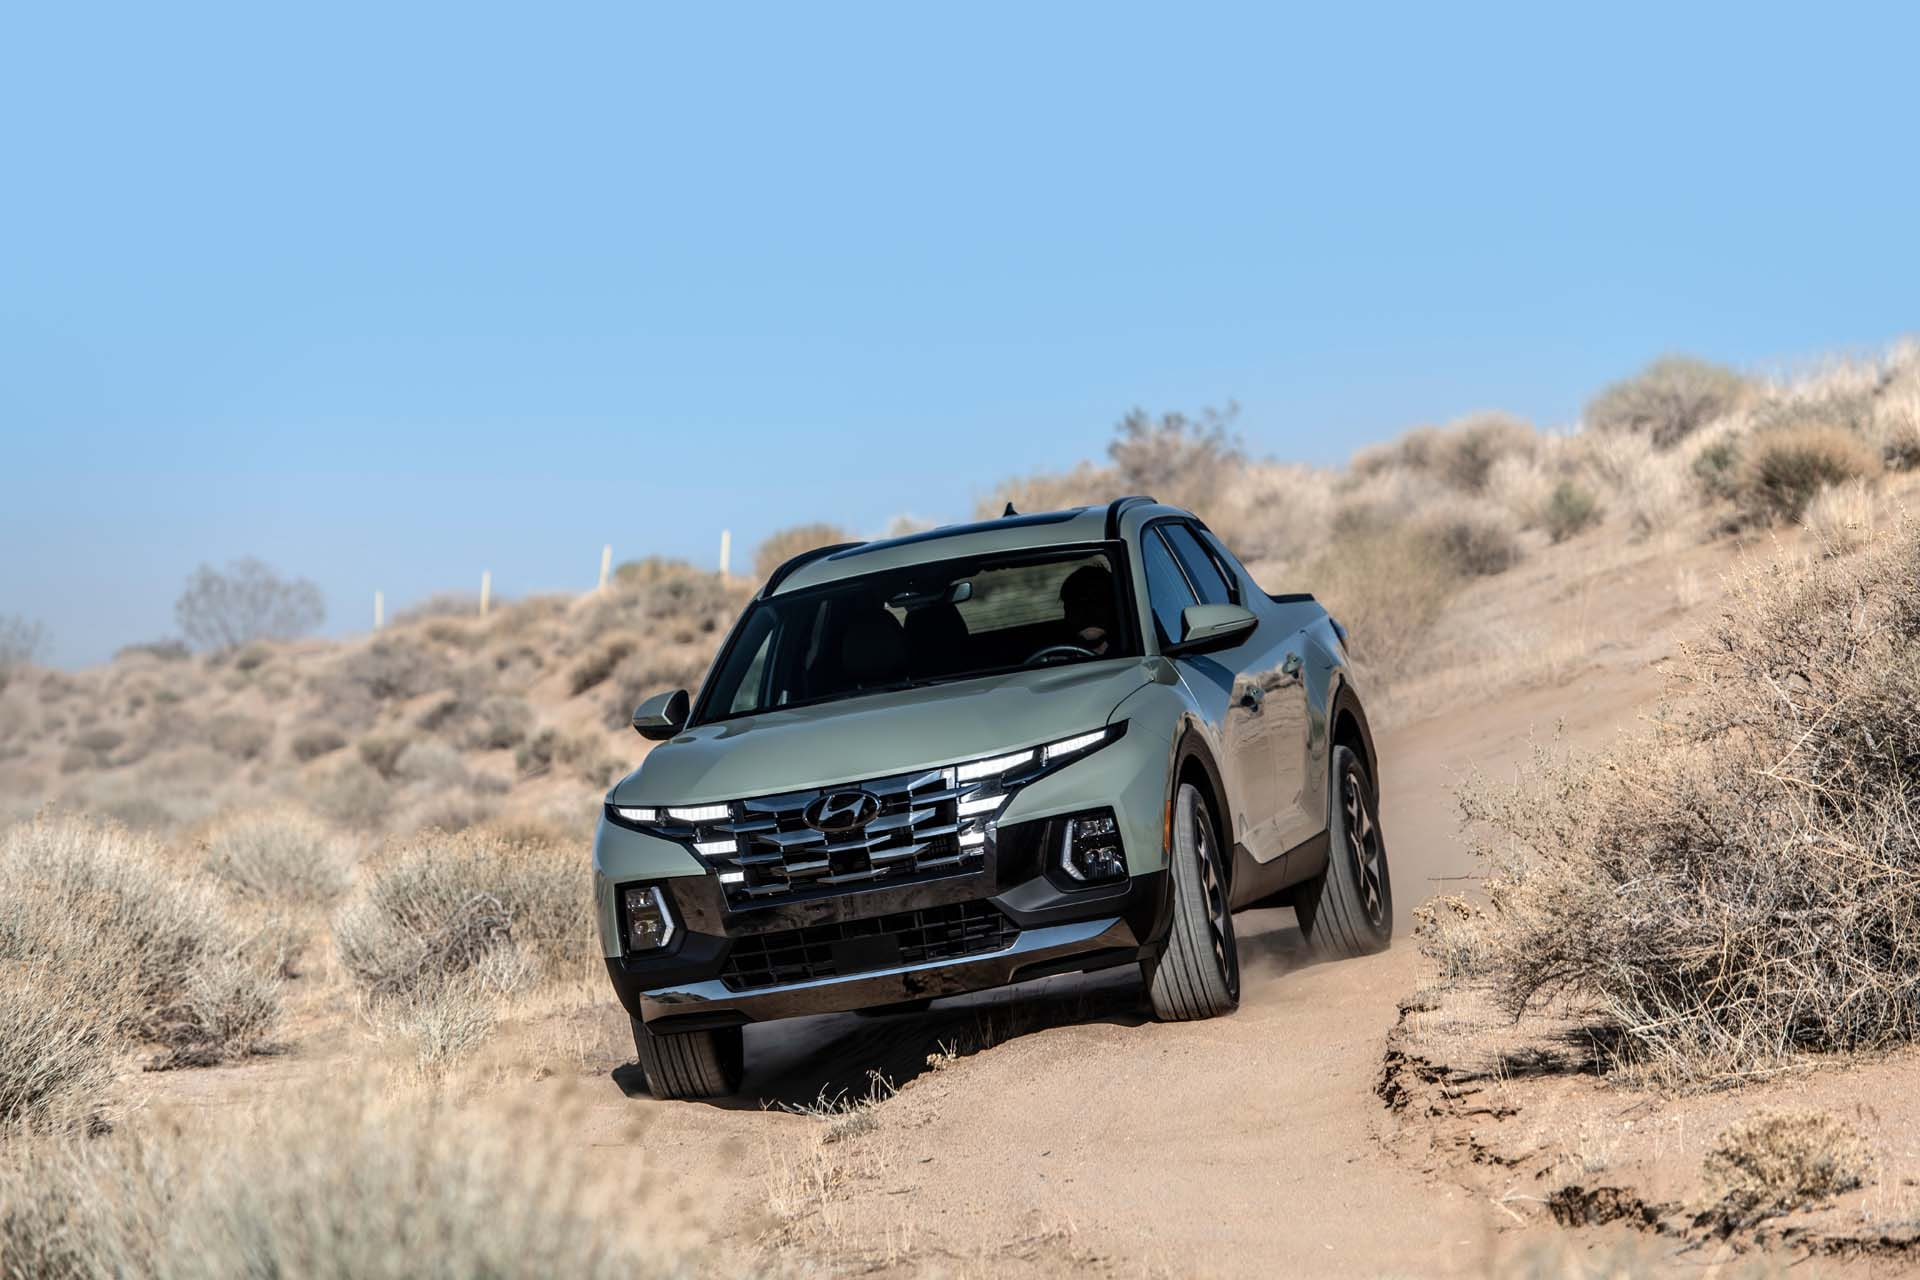 The Hyundai Santa Cruz will stand on either 18-inch or optional 20-inch alloy wheels. The wheelbase of the four-door pick-up is 3,005 mm.